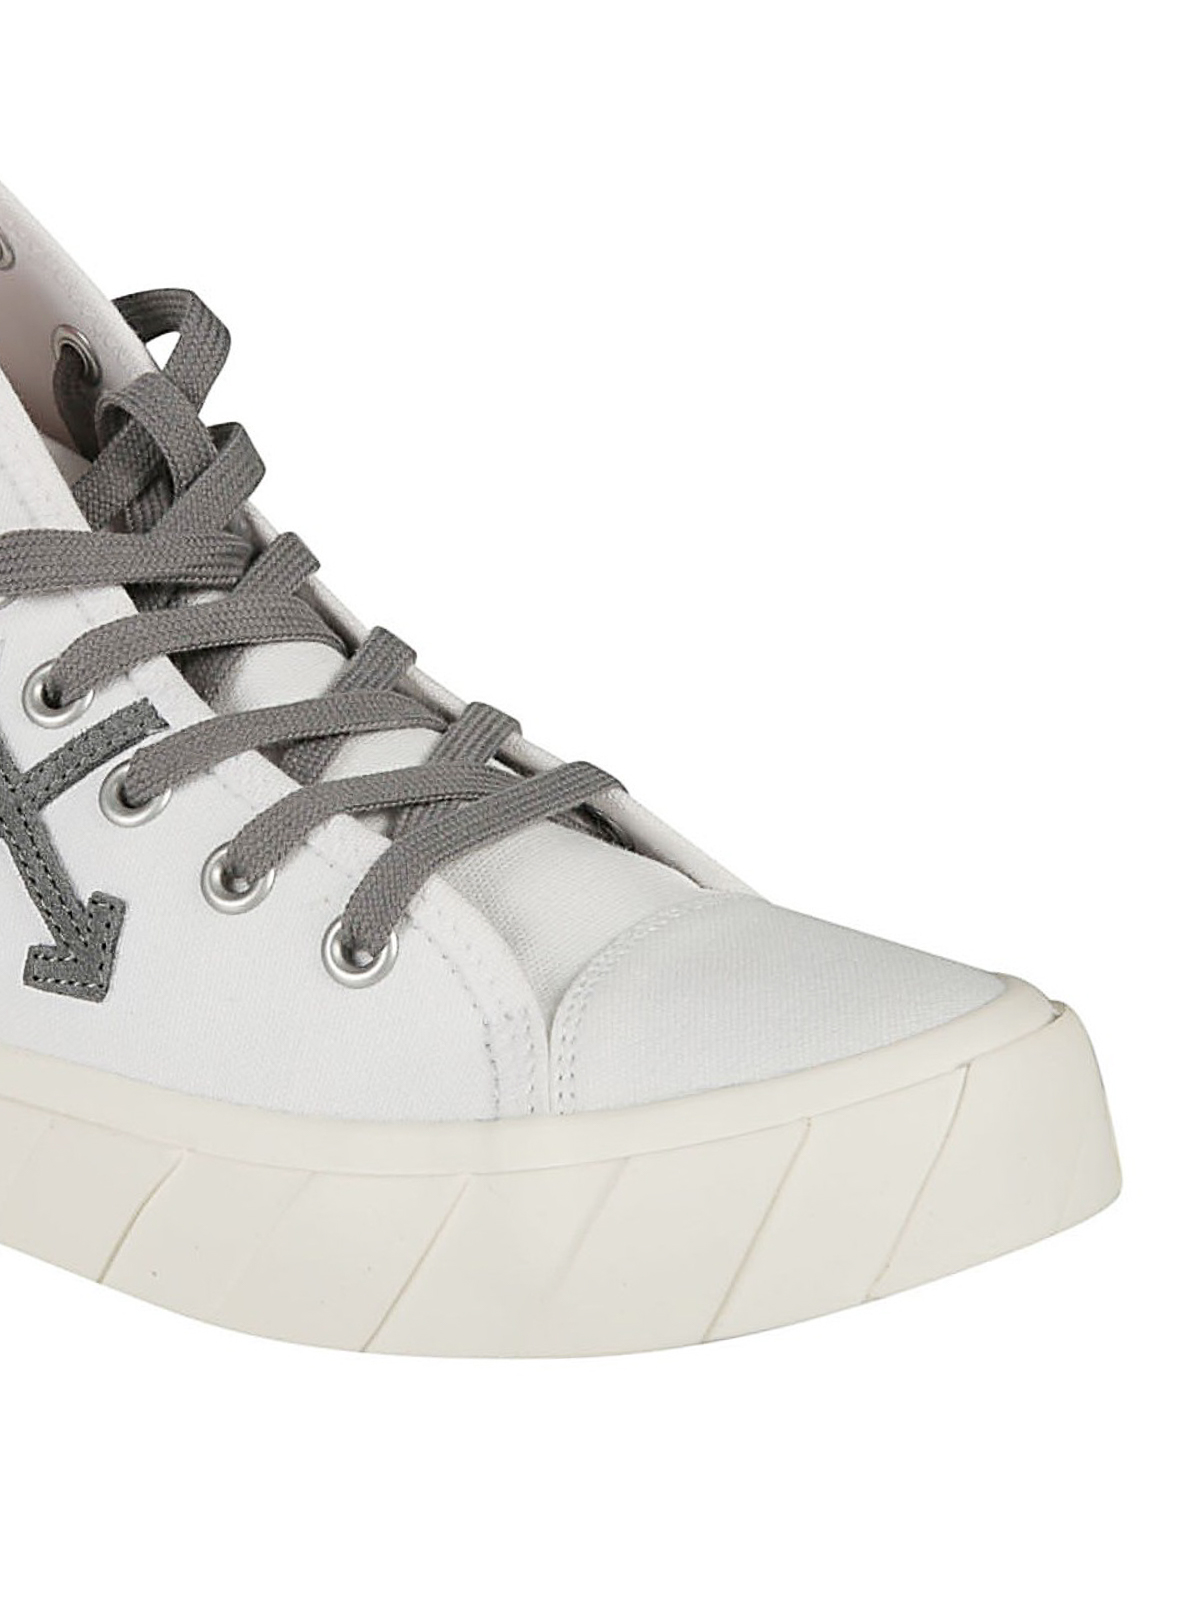 White and light grey canvas mid top